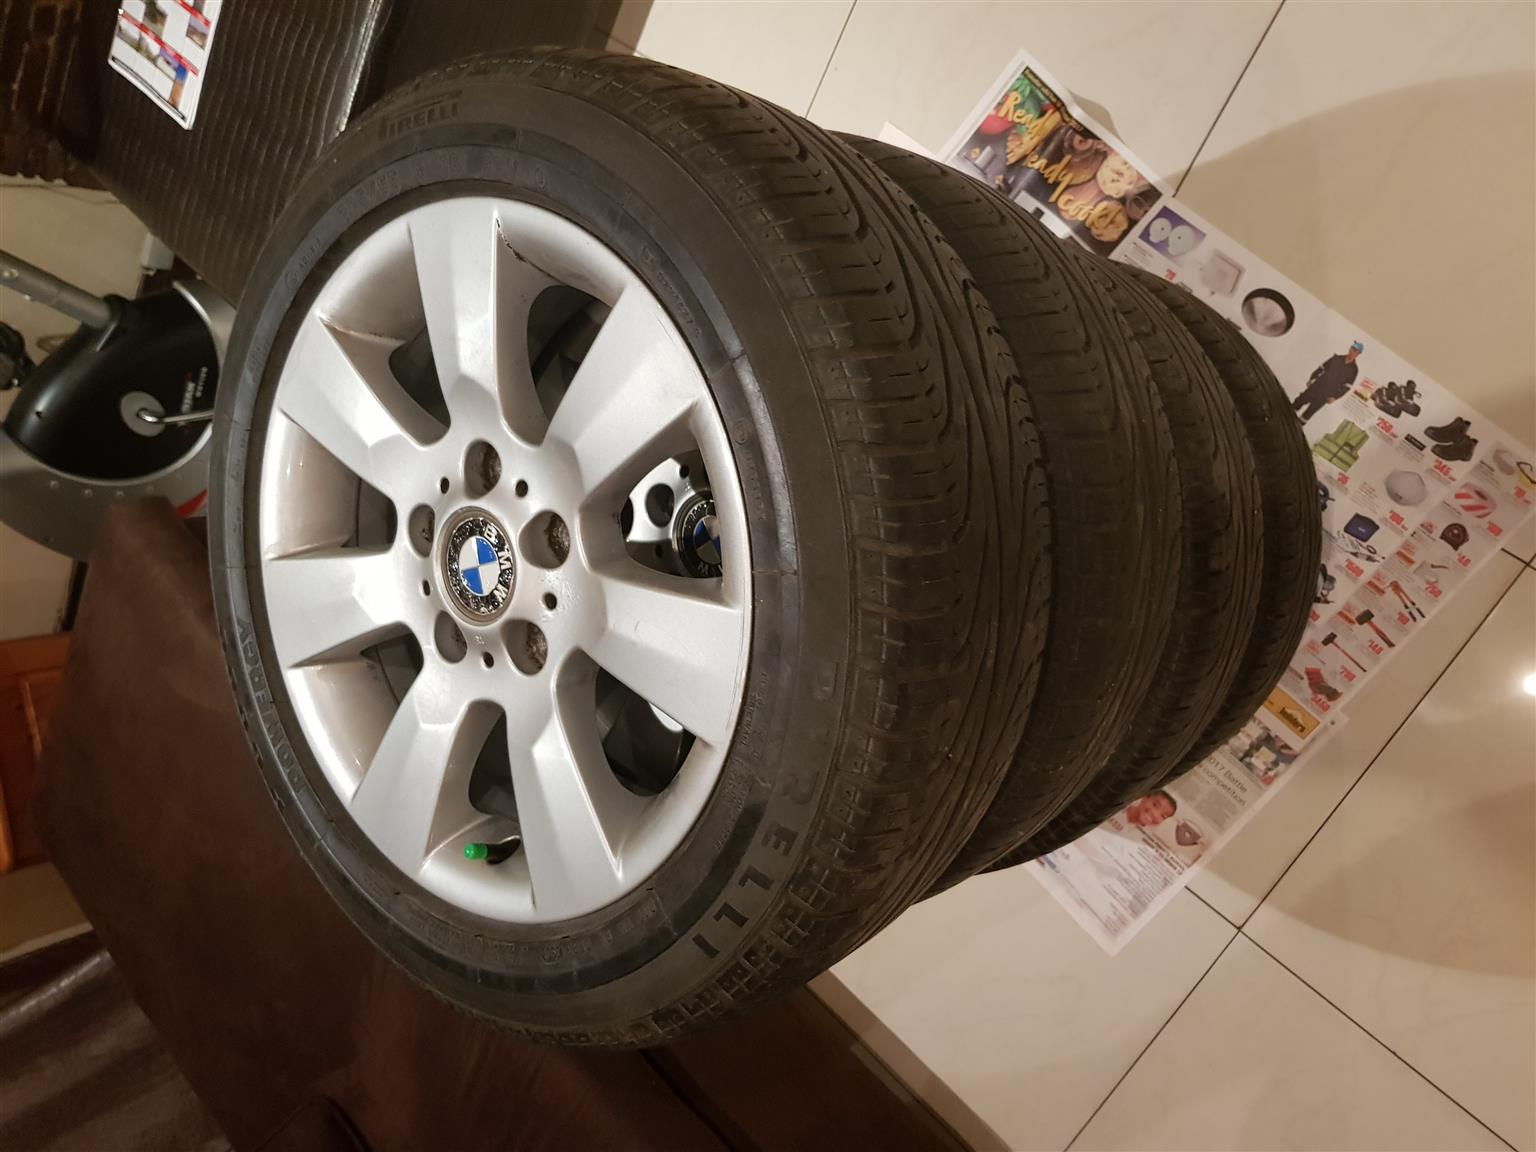 mail hubs car rims south parts bmw junk johannesburg wheels and inch spares rand tires gauteng